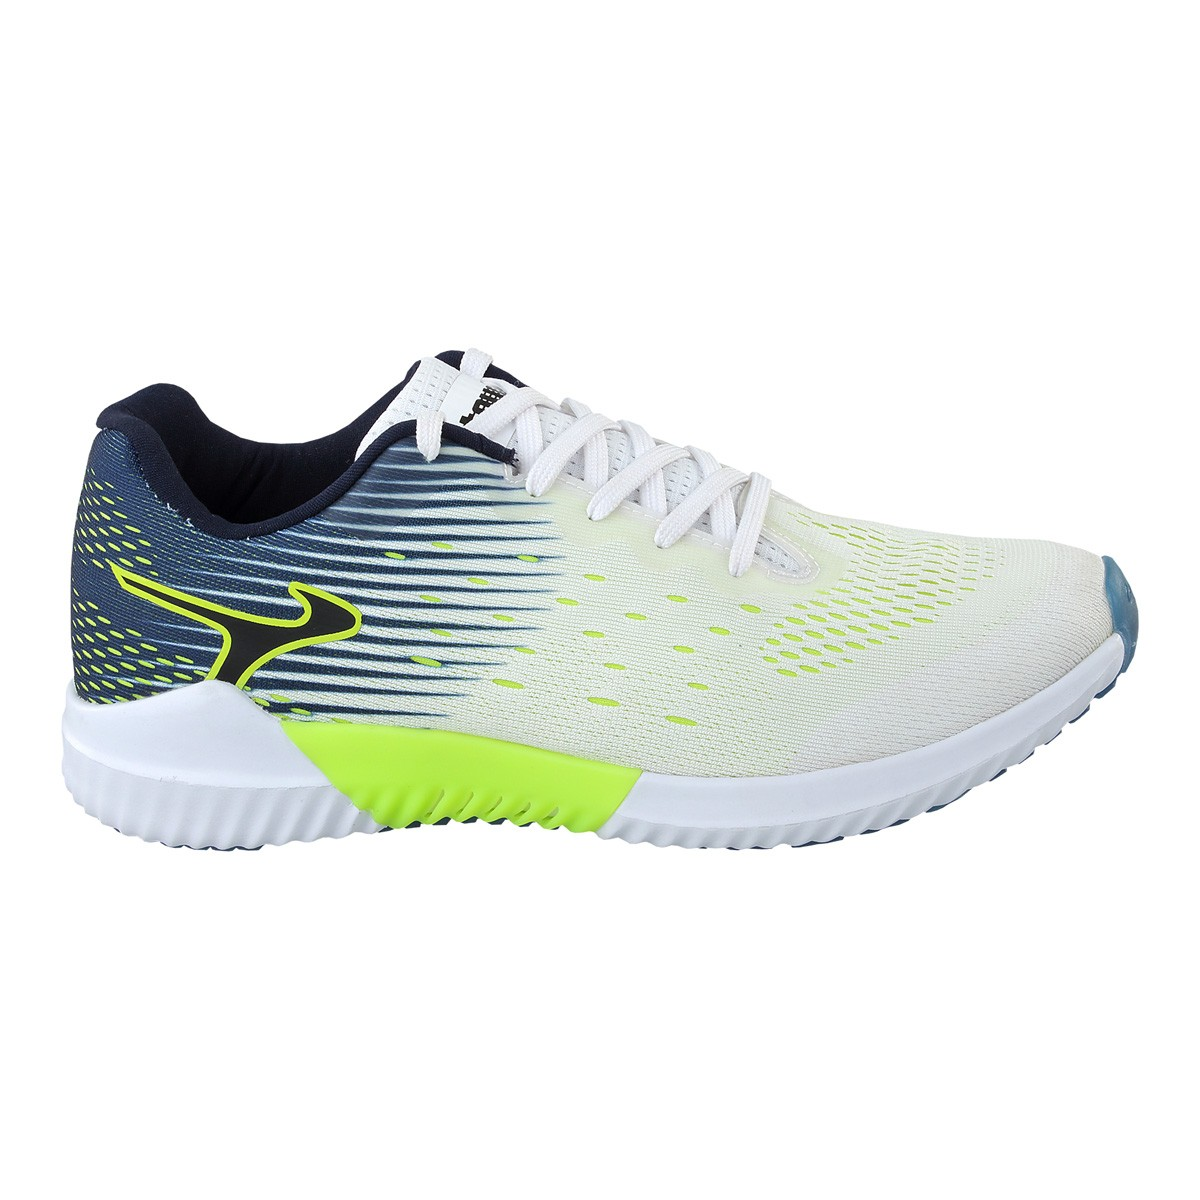 Touch-942-White/New Navy/Electricity